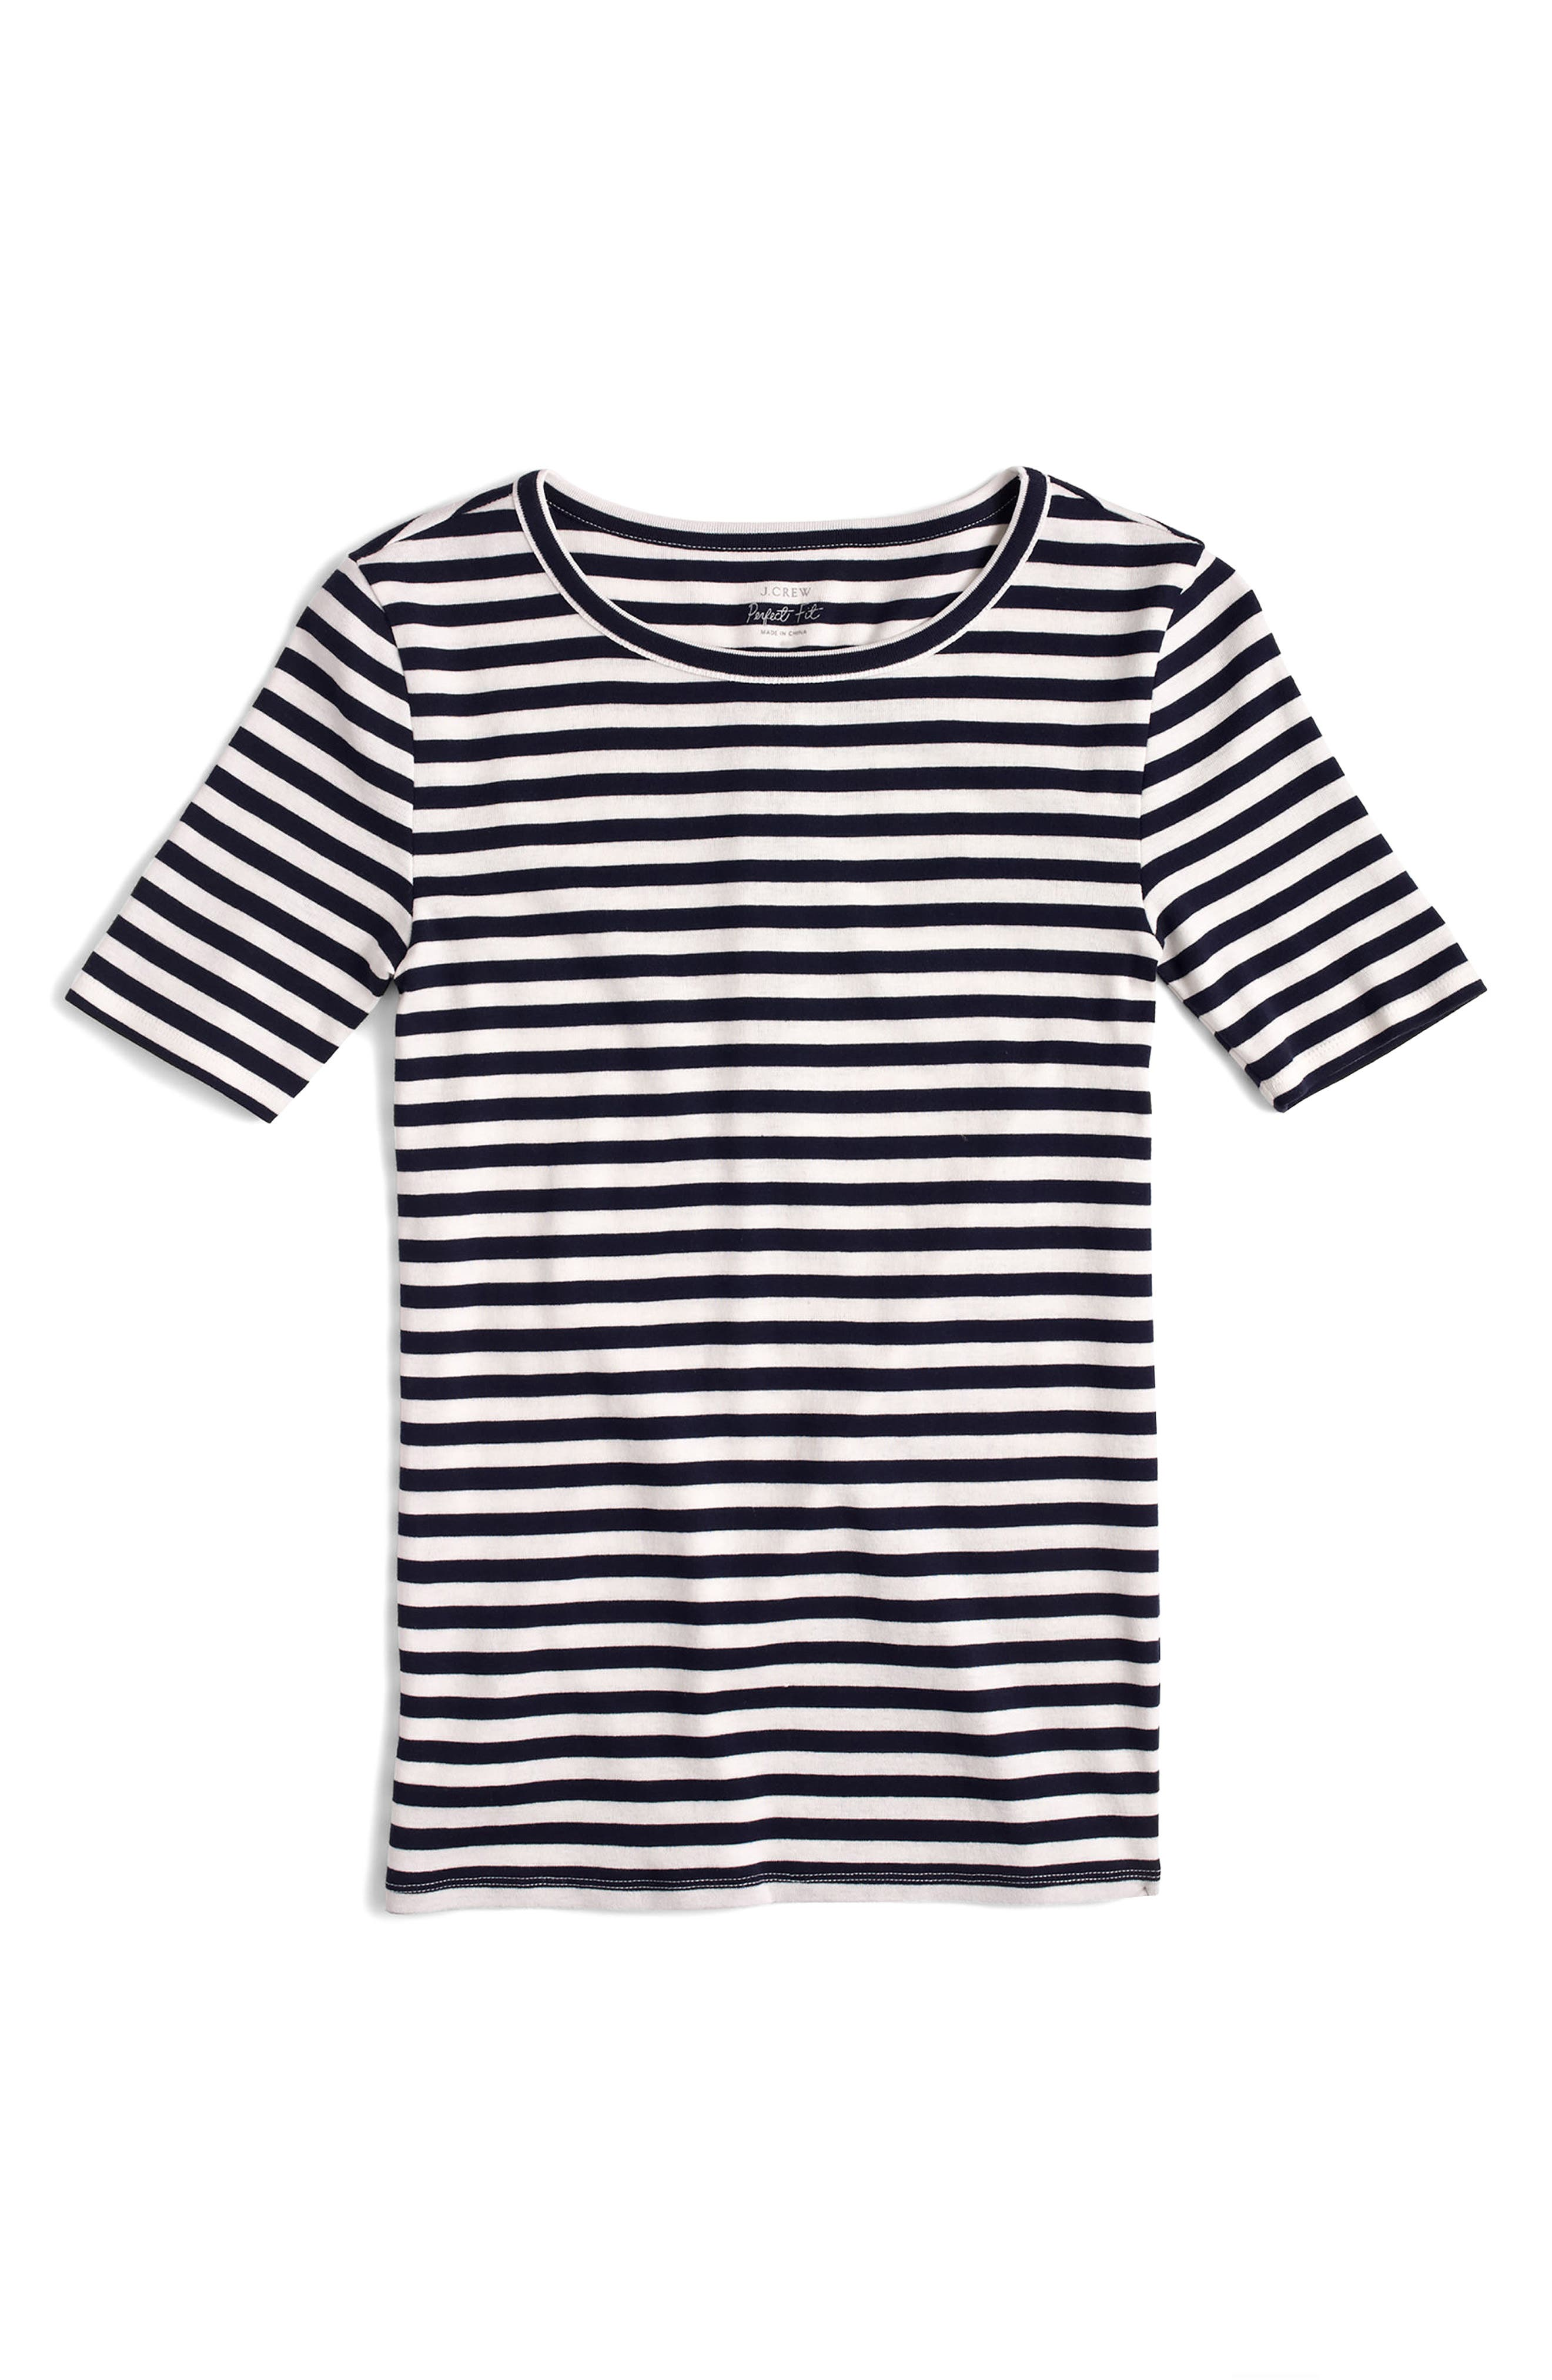 Alternate Image 1 Selected - J.Crew New Perfect Fit T-Shirt